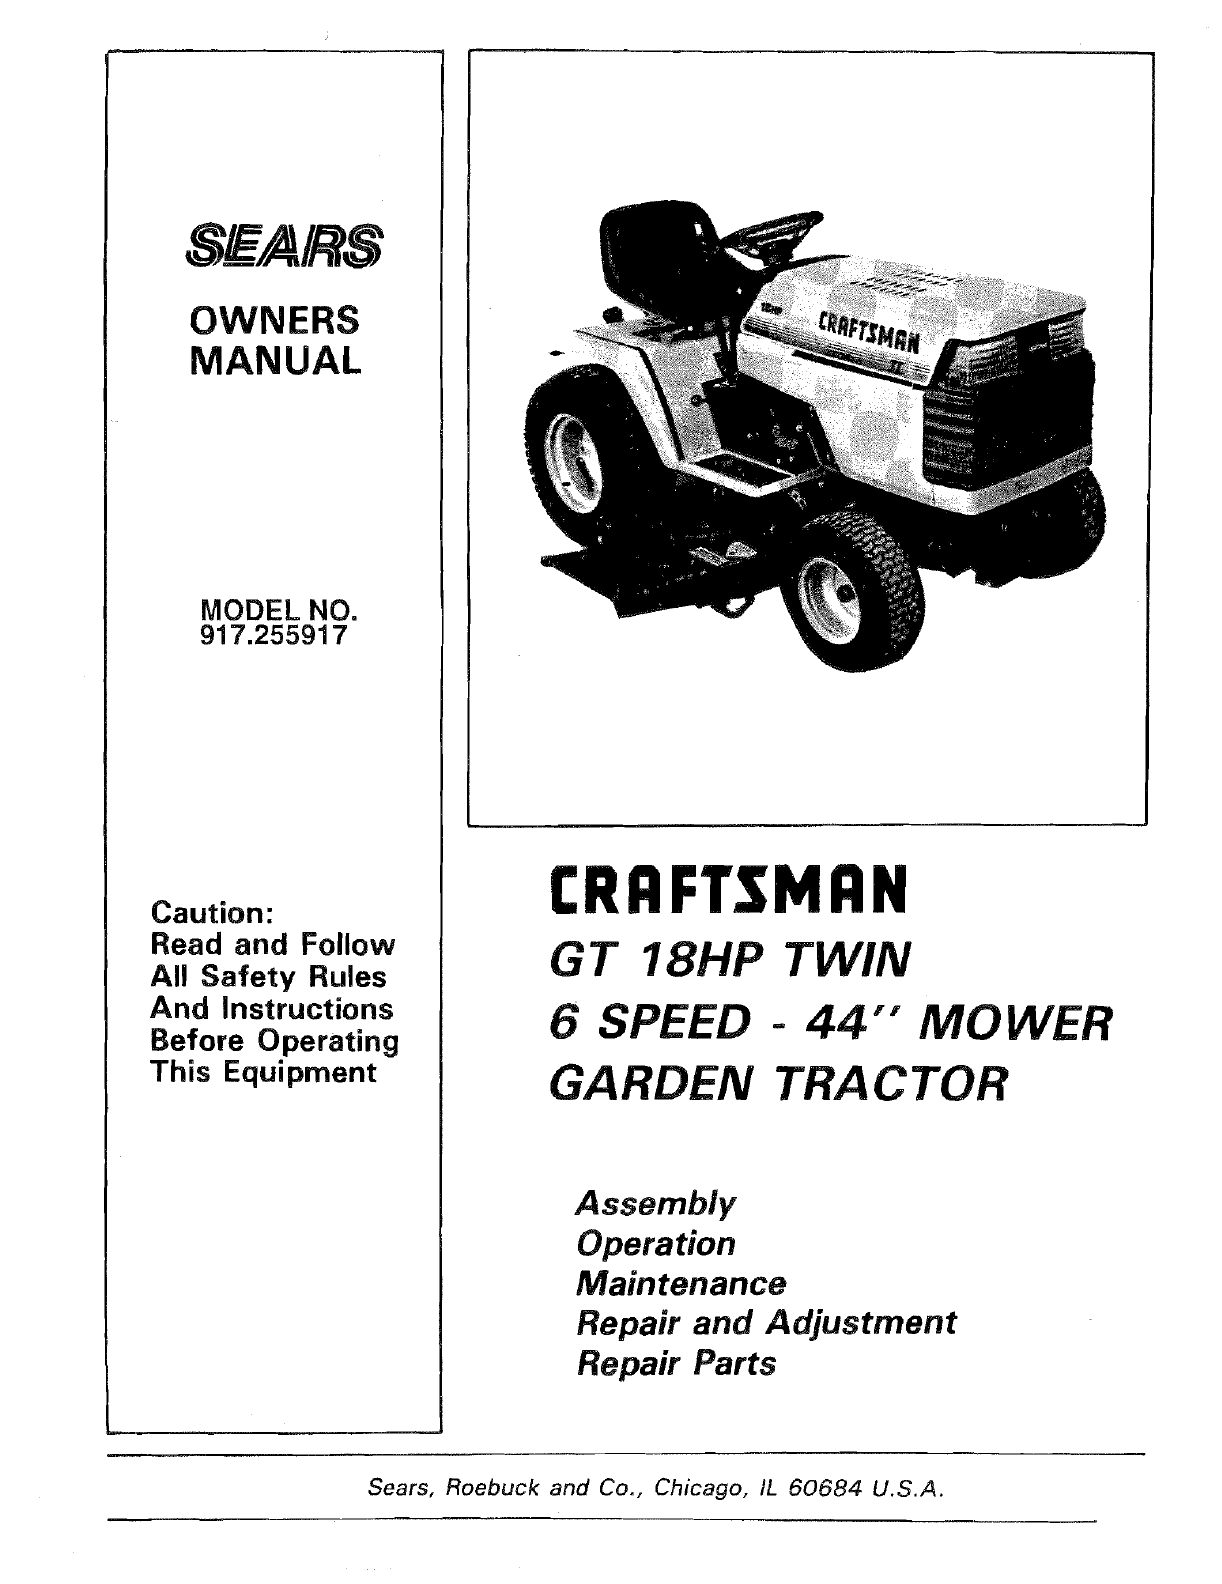 Craftsman 917255917 User Manual GT 18 TWIN GARDEN TRACTOR Manuals And  Guides L0709203UserManual.wiki